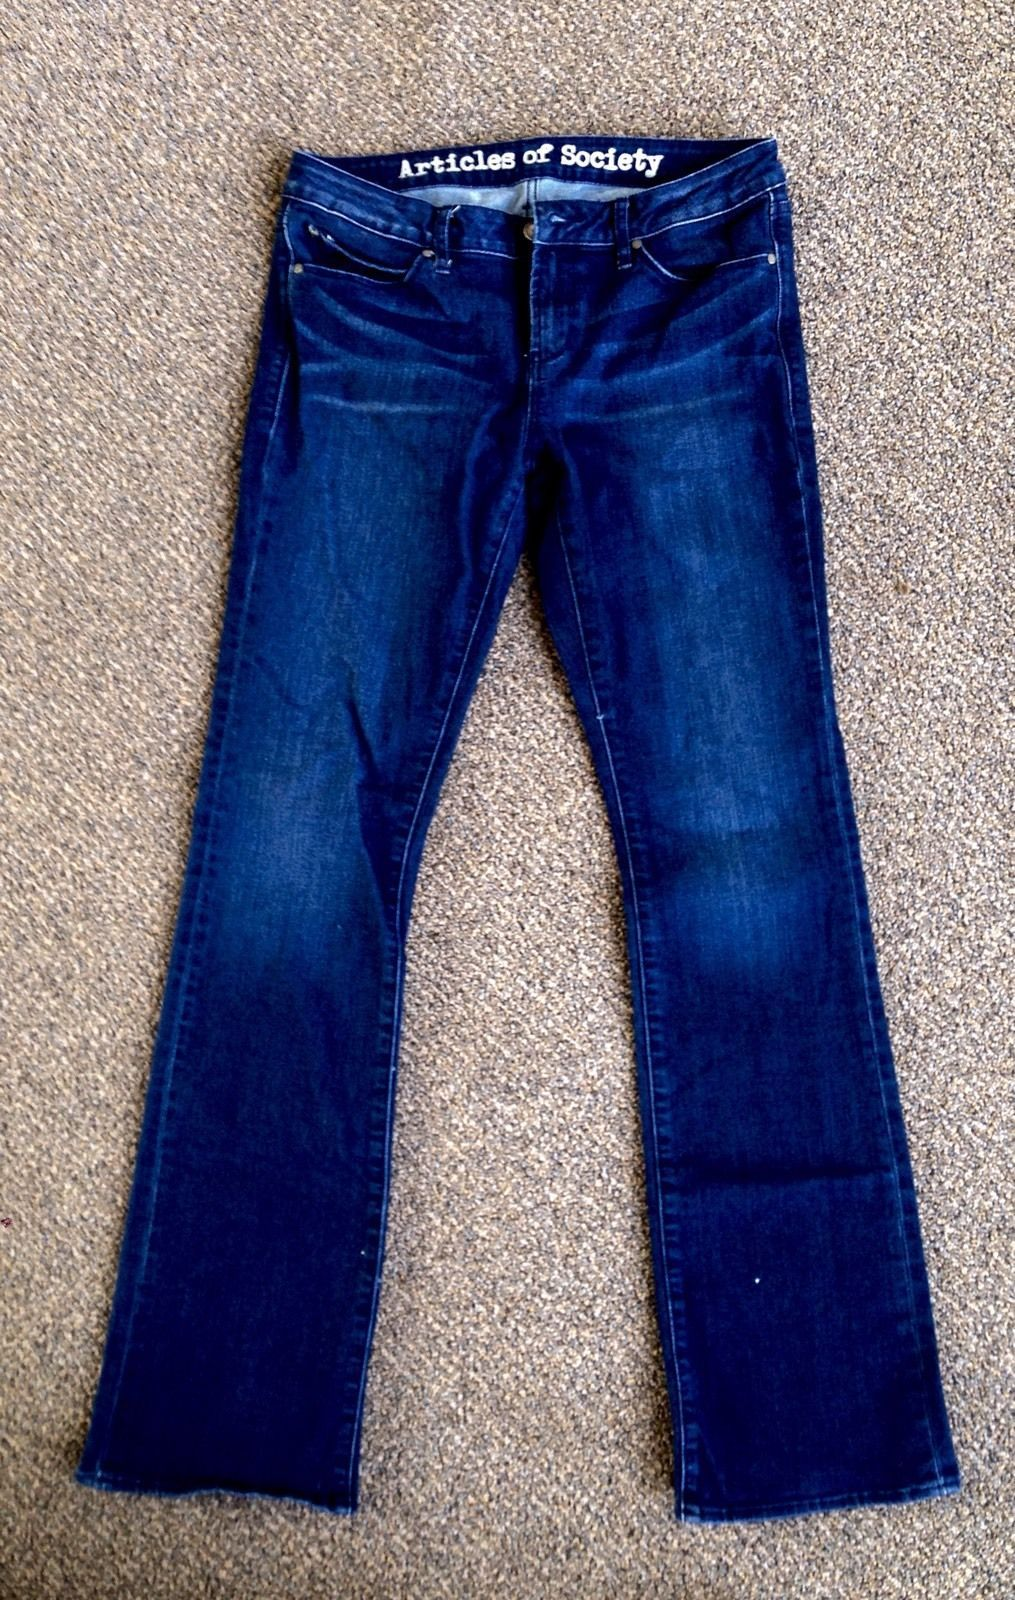 Articles Of Society Jeans Stretch Size 28 USED